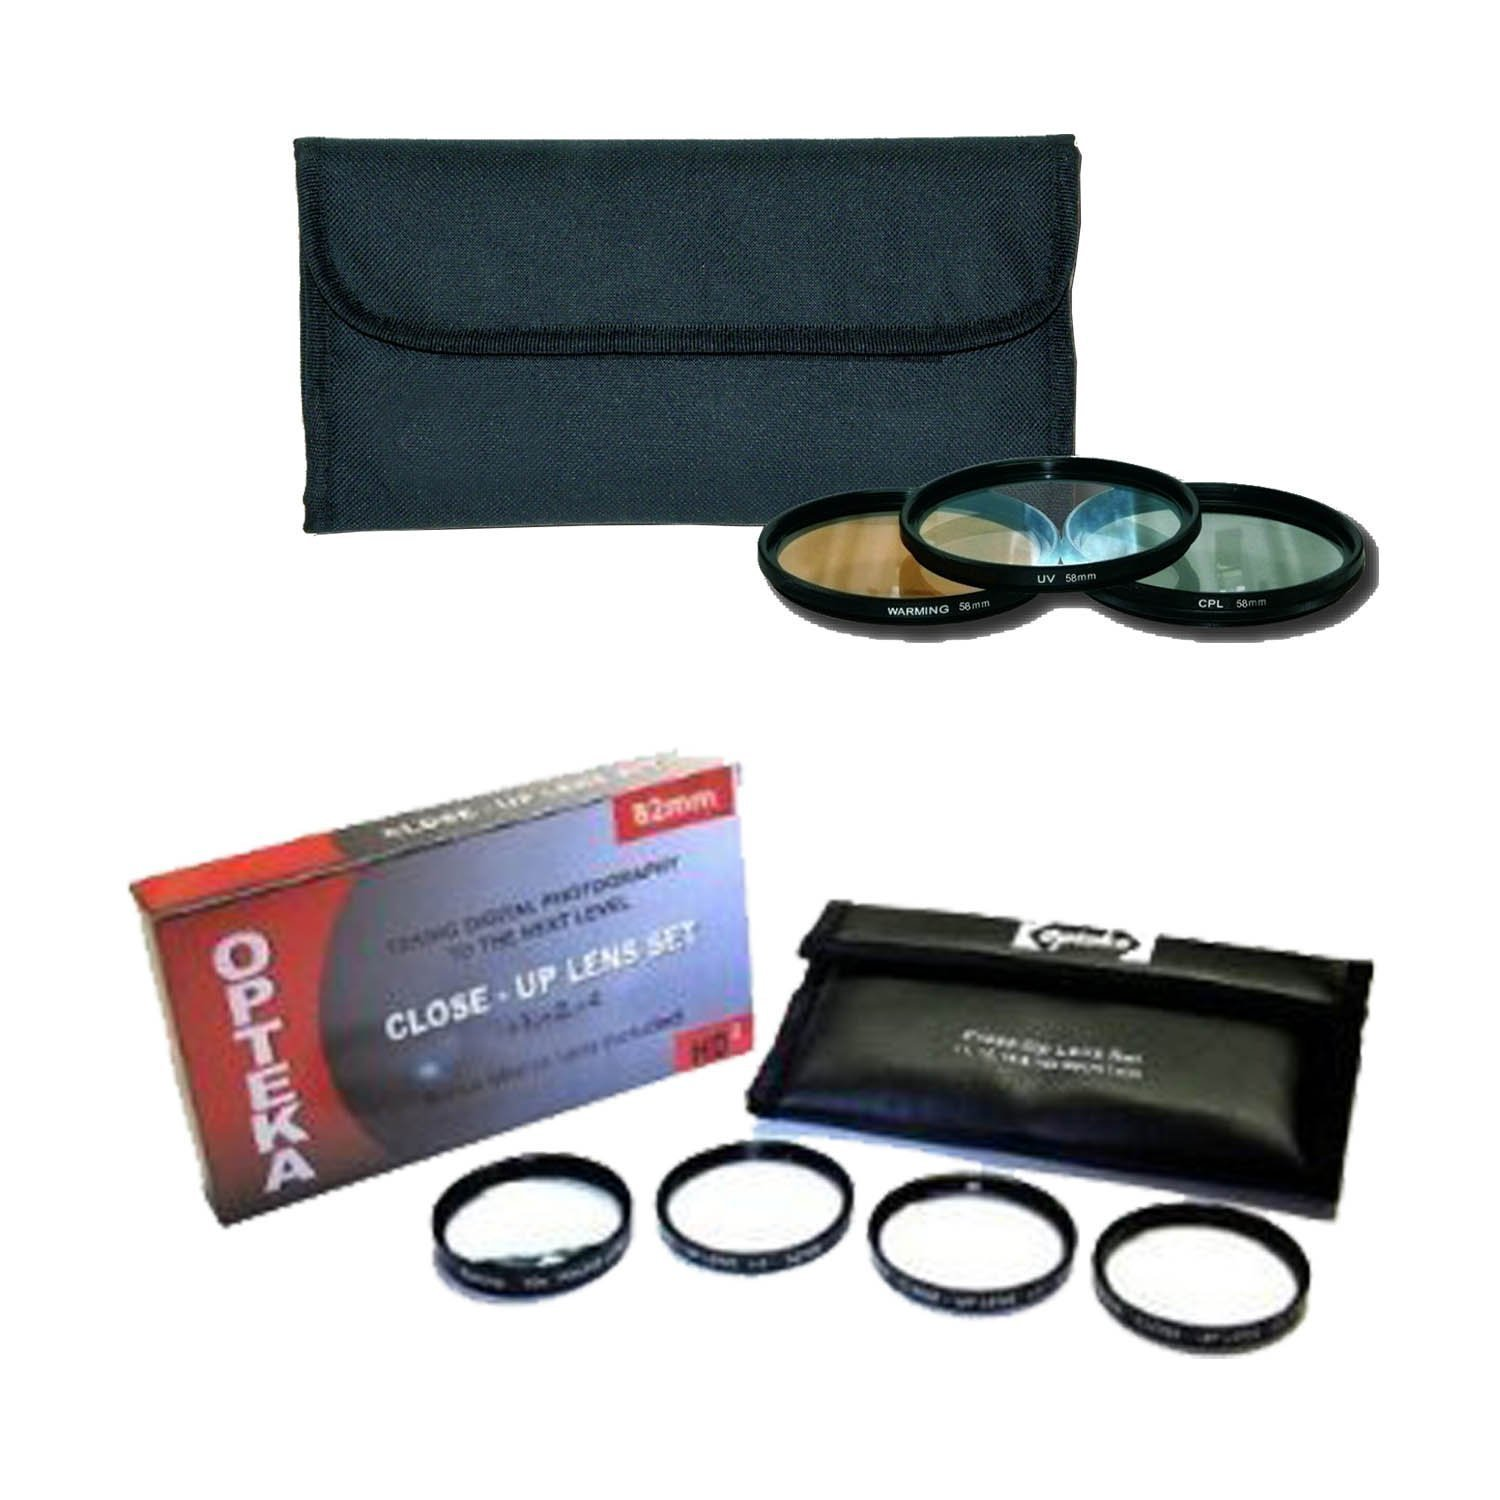 T4I 25 Piece Advanced Lens Package For The Canon EOS 7D 50D 5D 60D 70D T1I EF 35mm f//1.4L, EF 85mm f//1.2L II, EF 135mm f//2L Includes 72MM 0.43X HD2 Wide Angle Panoramic Macro Fisheye Lens 15-85mm 18-200mm 28-135mm T3I 72MM 2.2x T3 T5 SL1 650D T5I